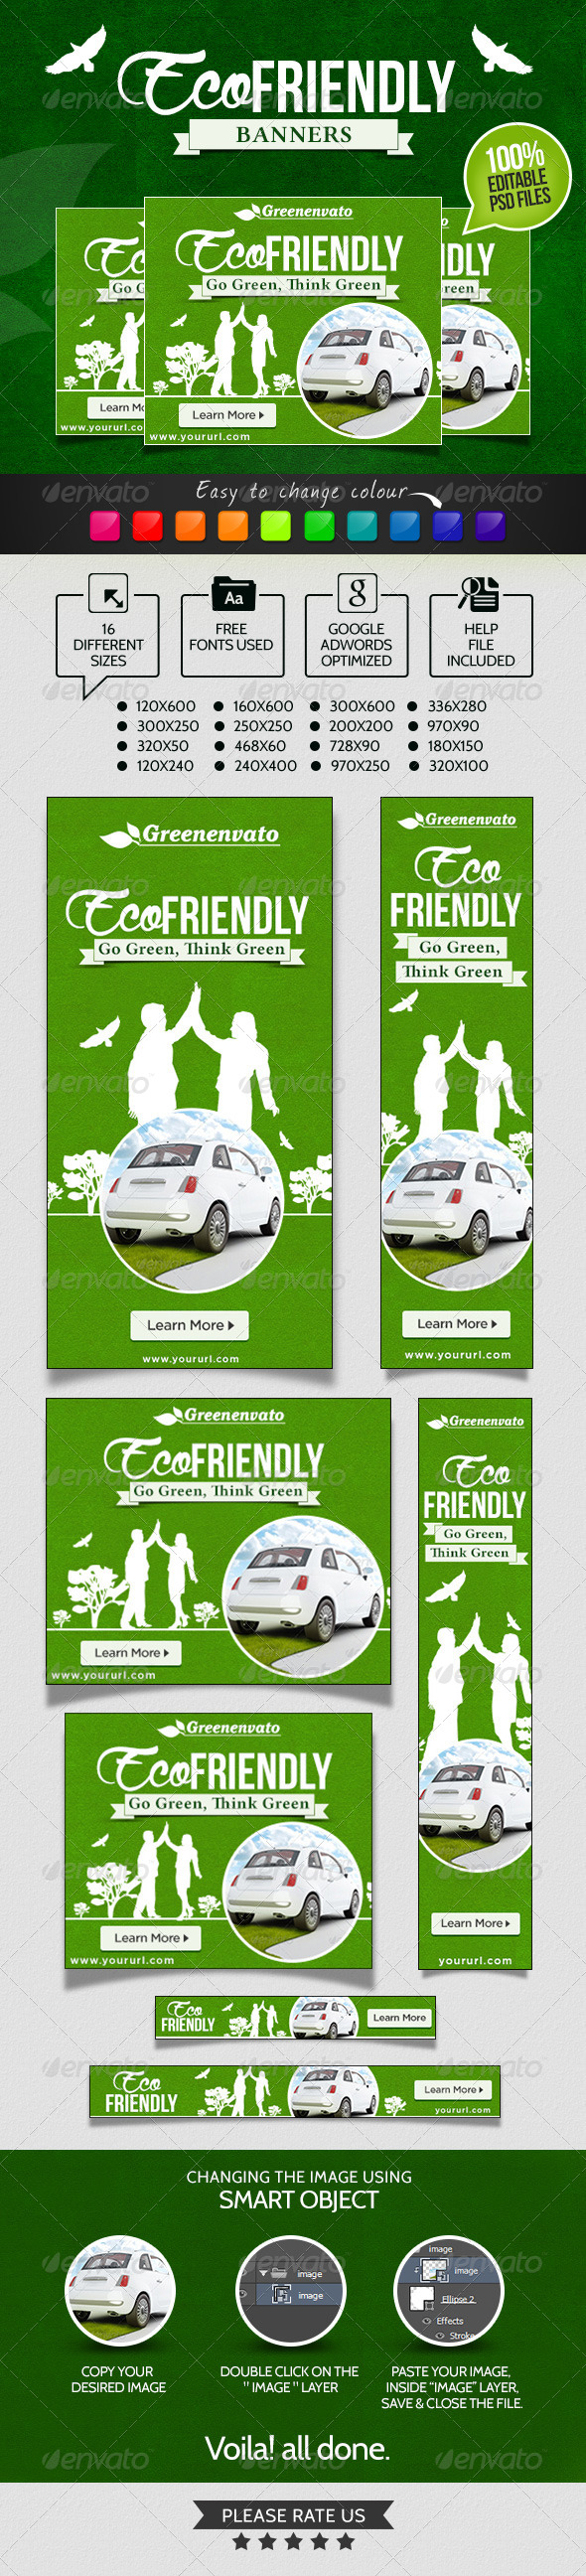 Banners for Eco Friendly Products - Banners & Ads Web Elements